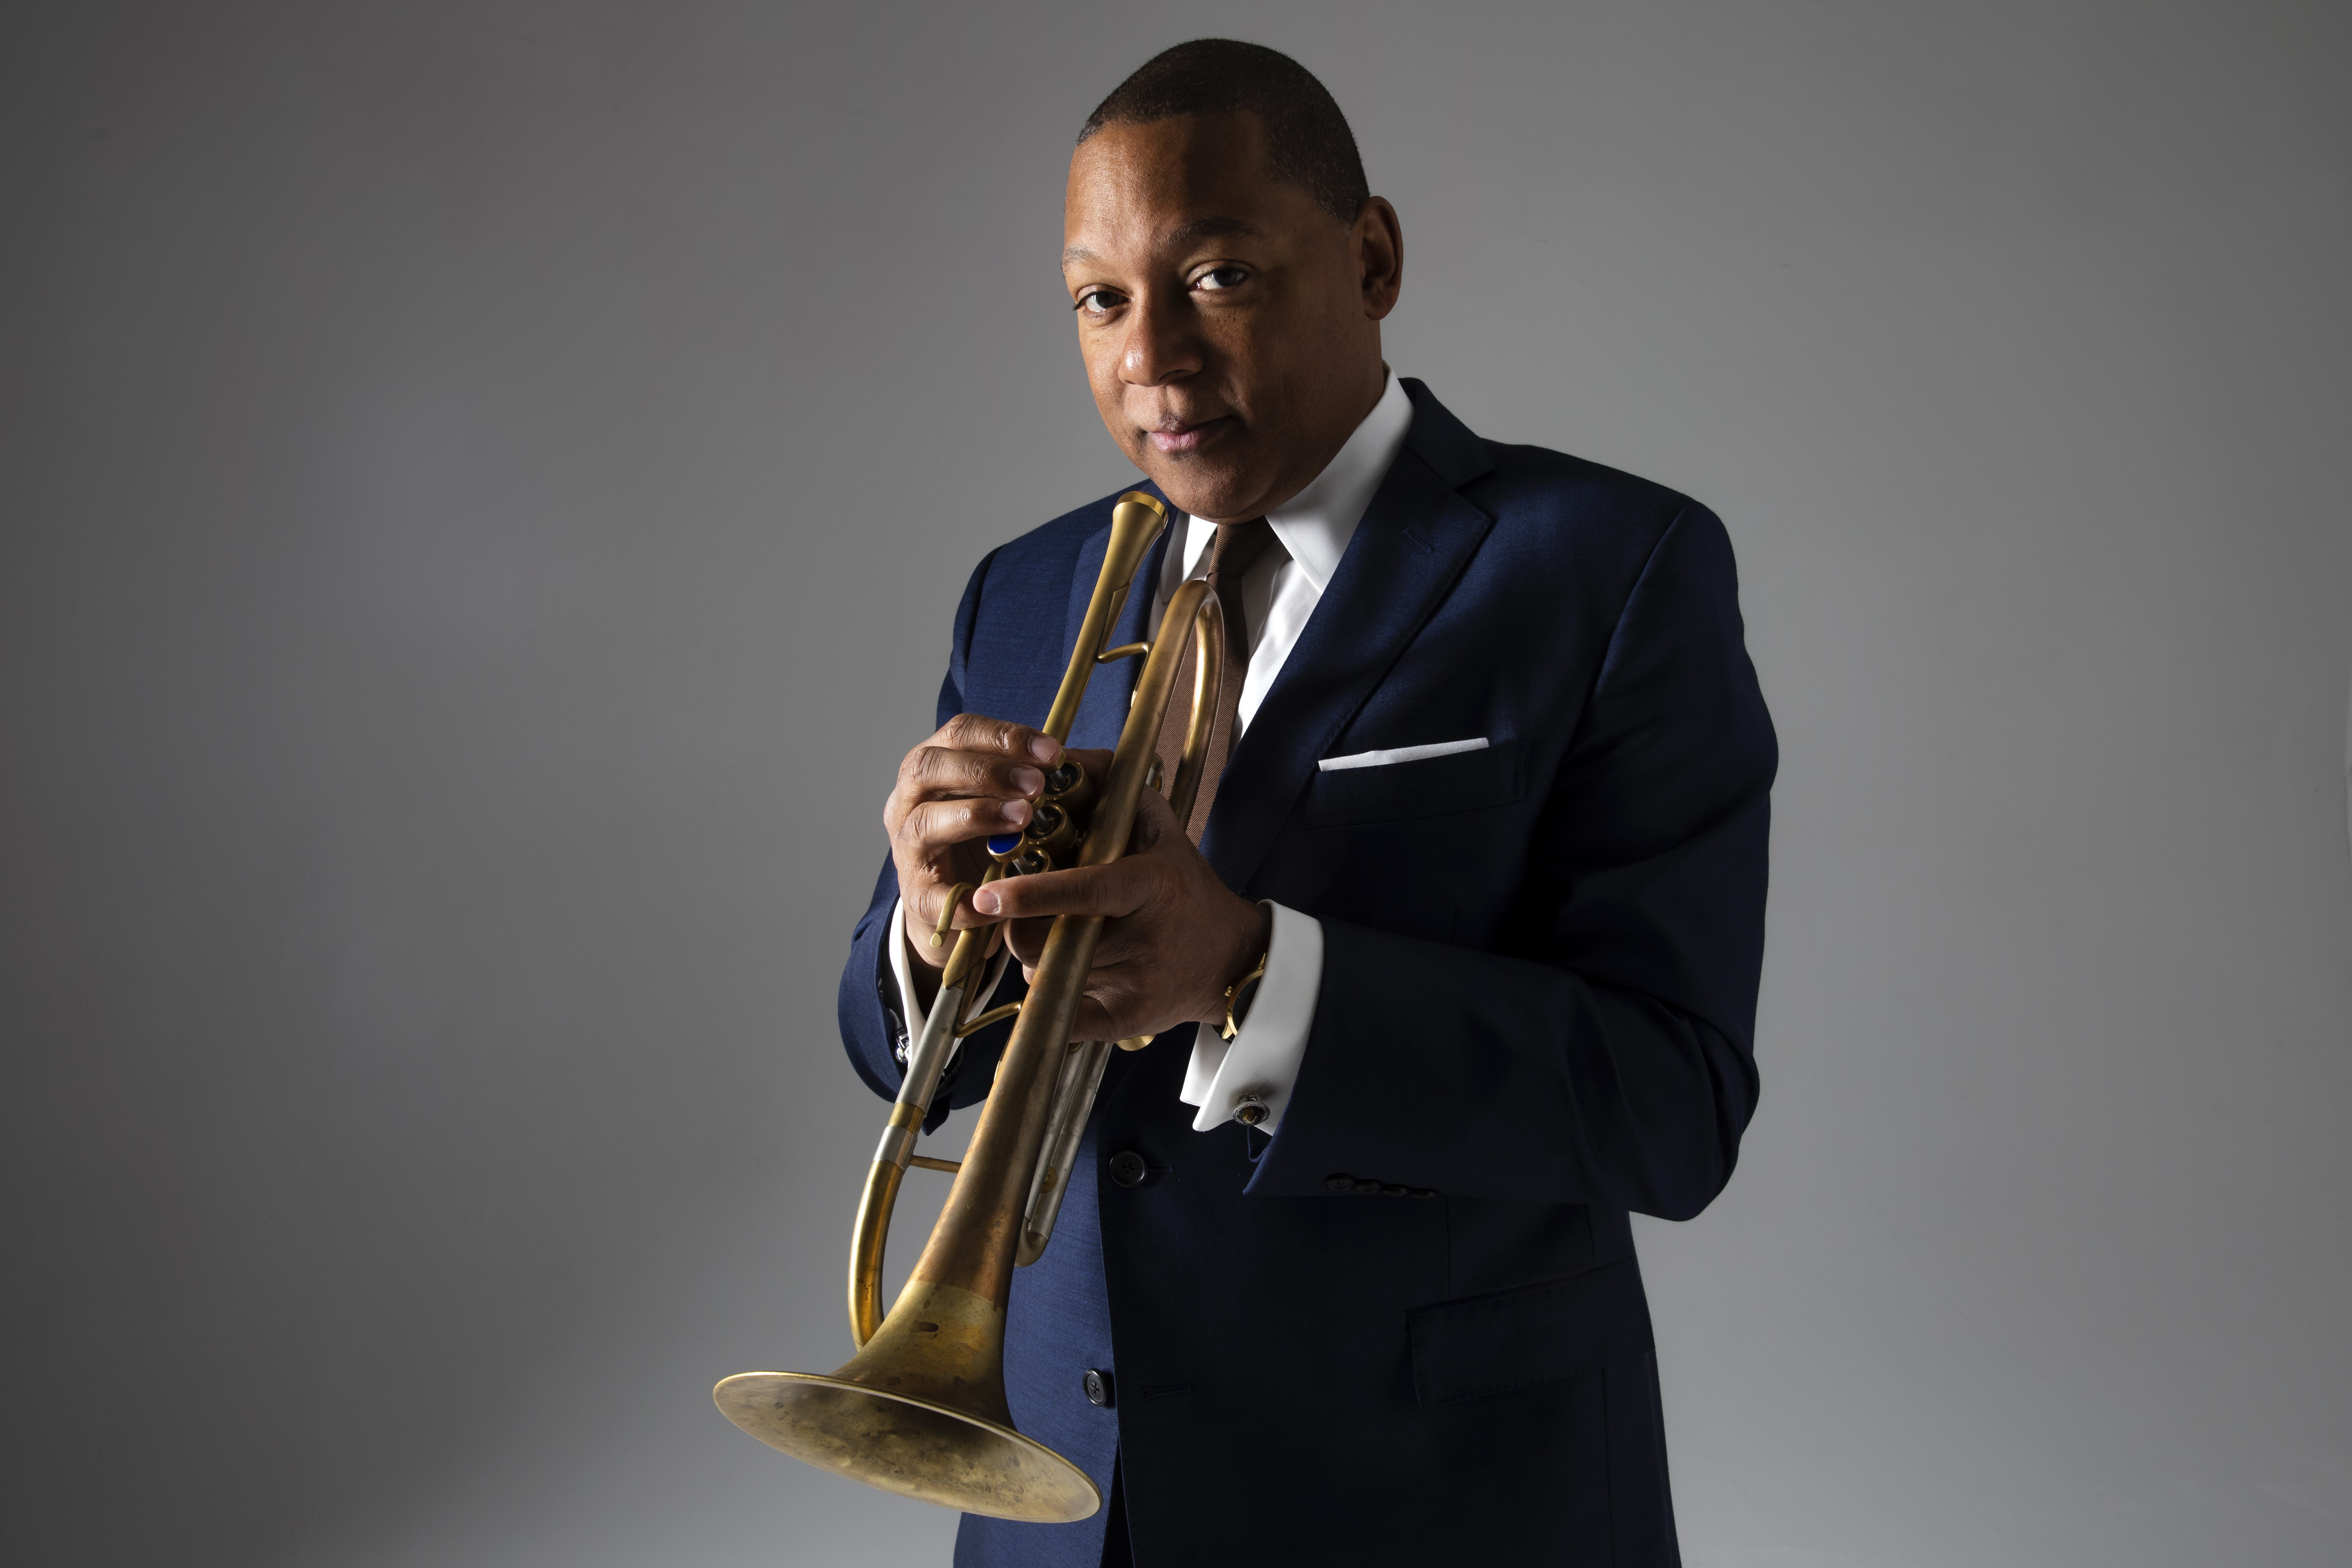 The festival starts with two concerts Sunday, May 23 at 4 p.m. and 7:30 p.m. from the Jazz at Lincoln Center Orchestra Septet with Wynton Marsalis. - COURTESY OF SAVANNAH MUSIC FESTIVAL